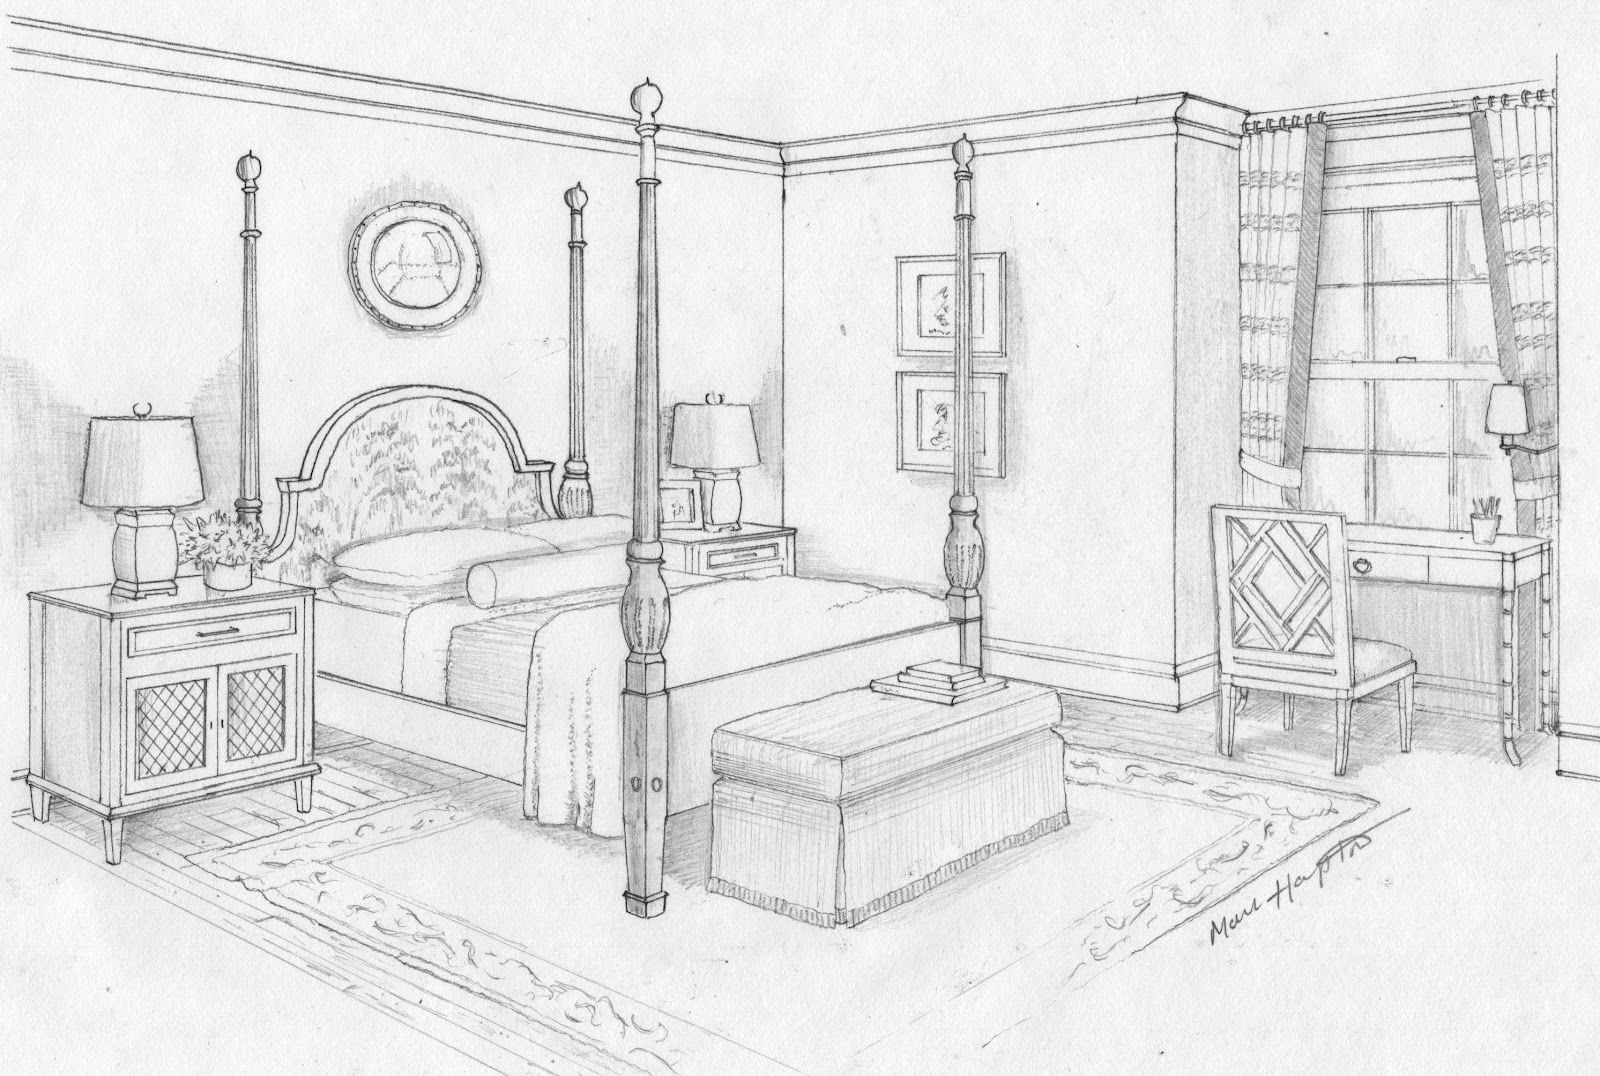 Interior Design Bedroom Sketches dream bedroom sketch | bedroom ideas pictures | art | pinterest